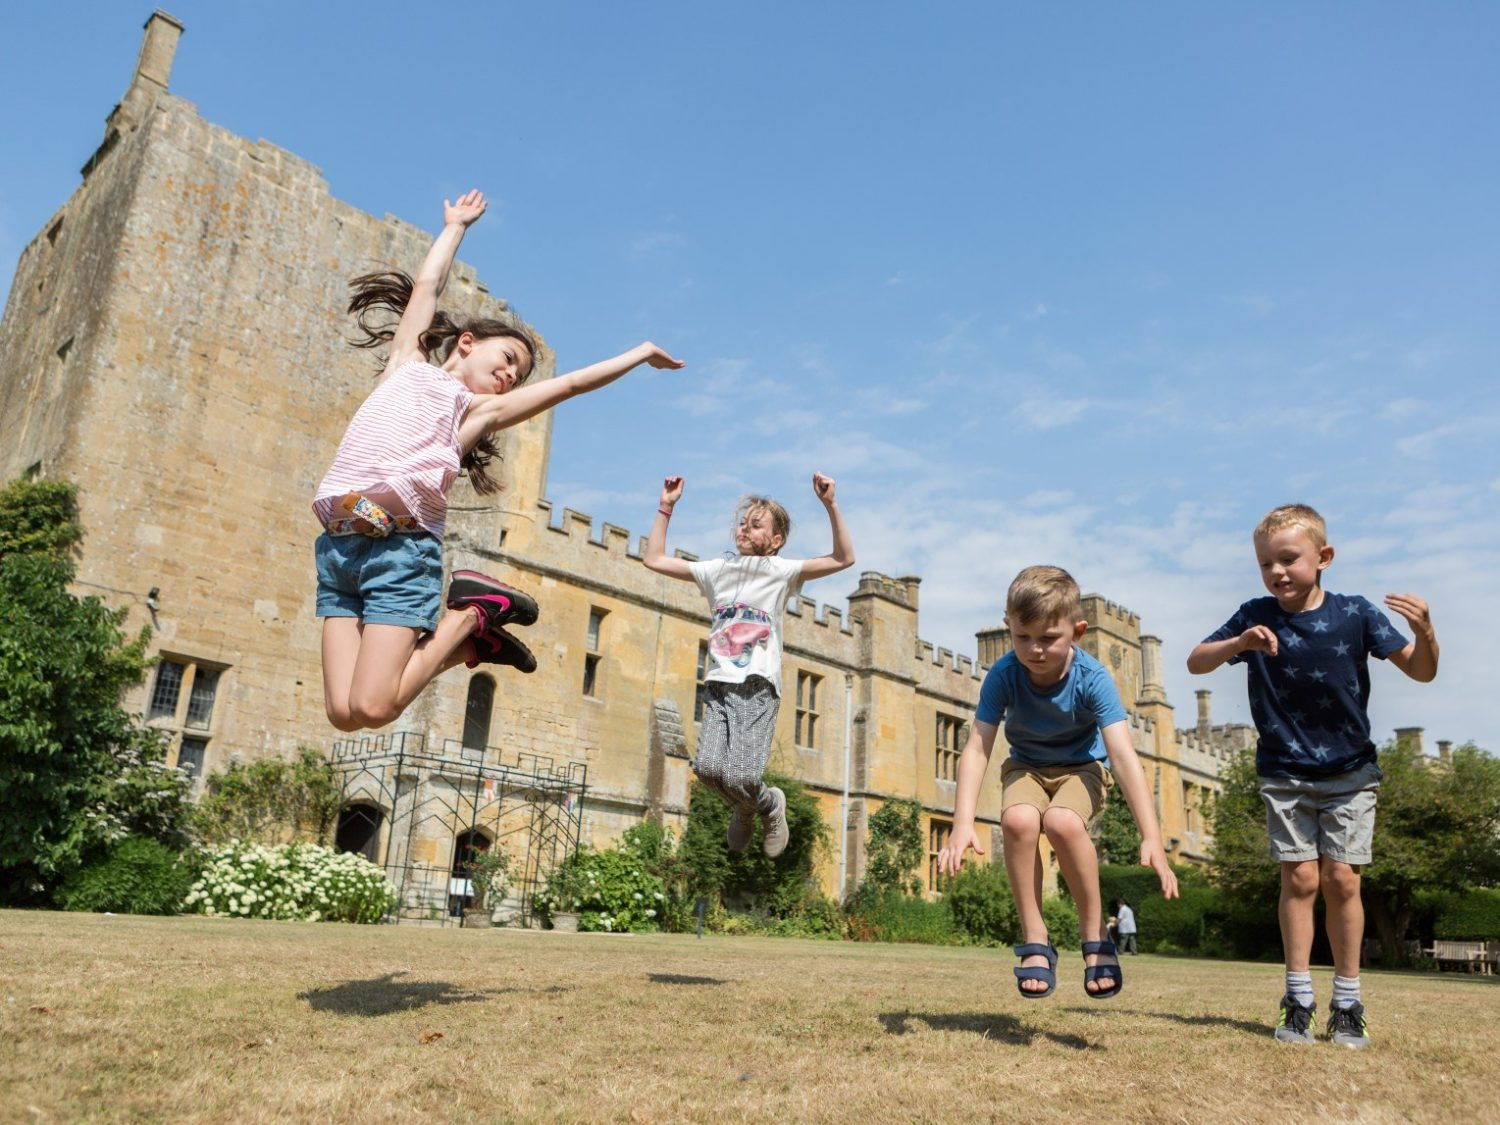 children jumping in air in front of castle